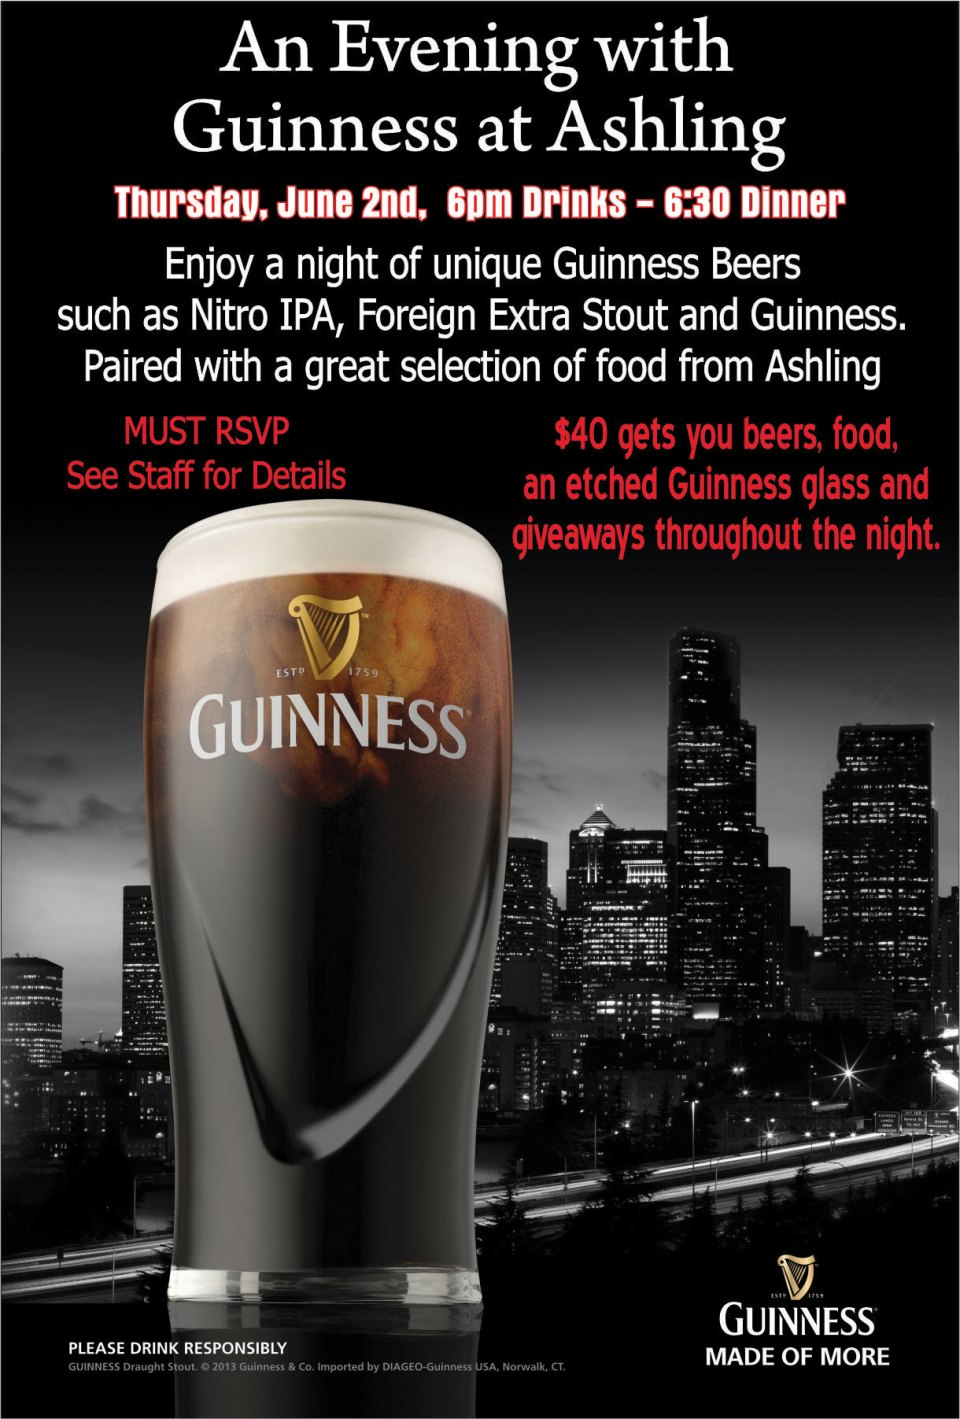 Evening-with-Guinness-at-Ashling